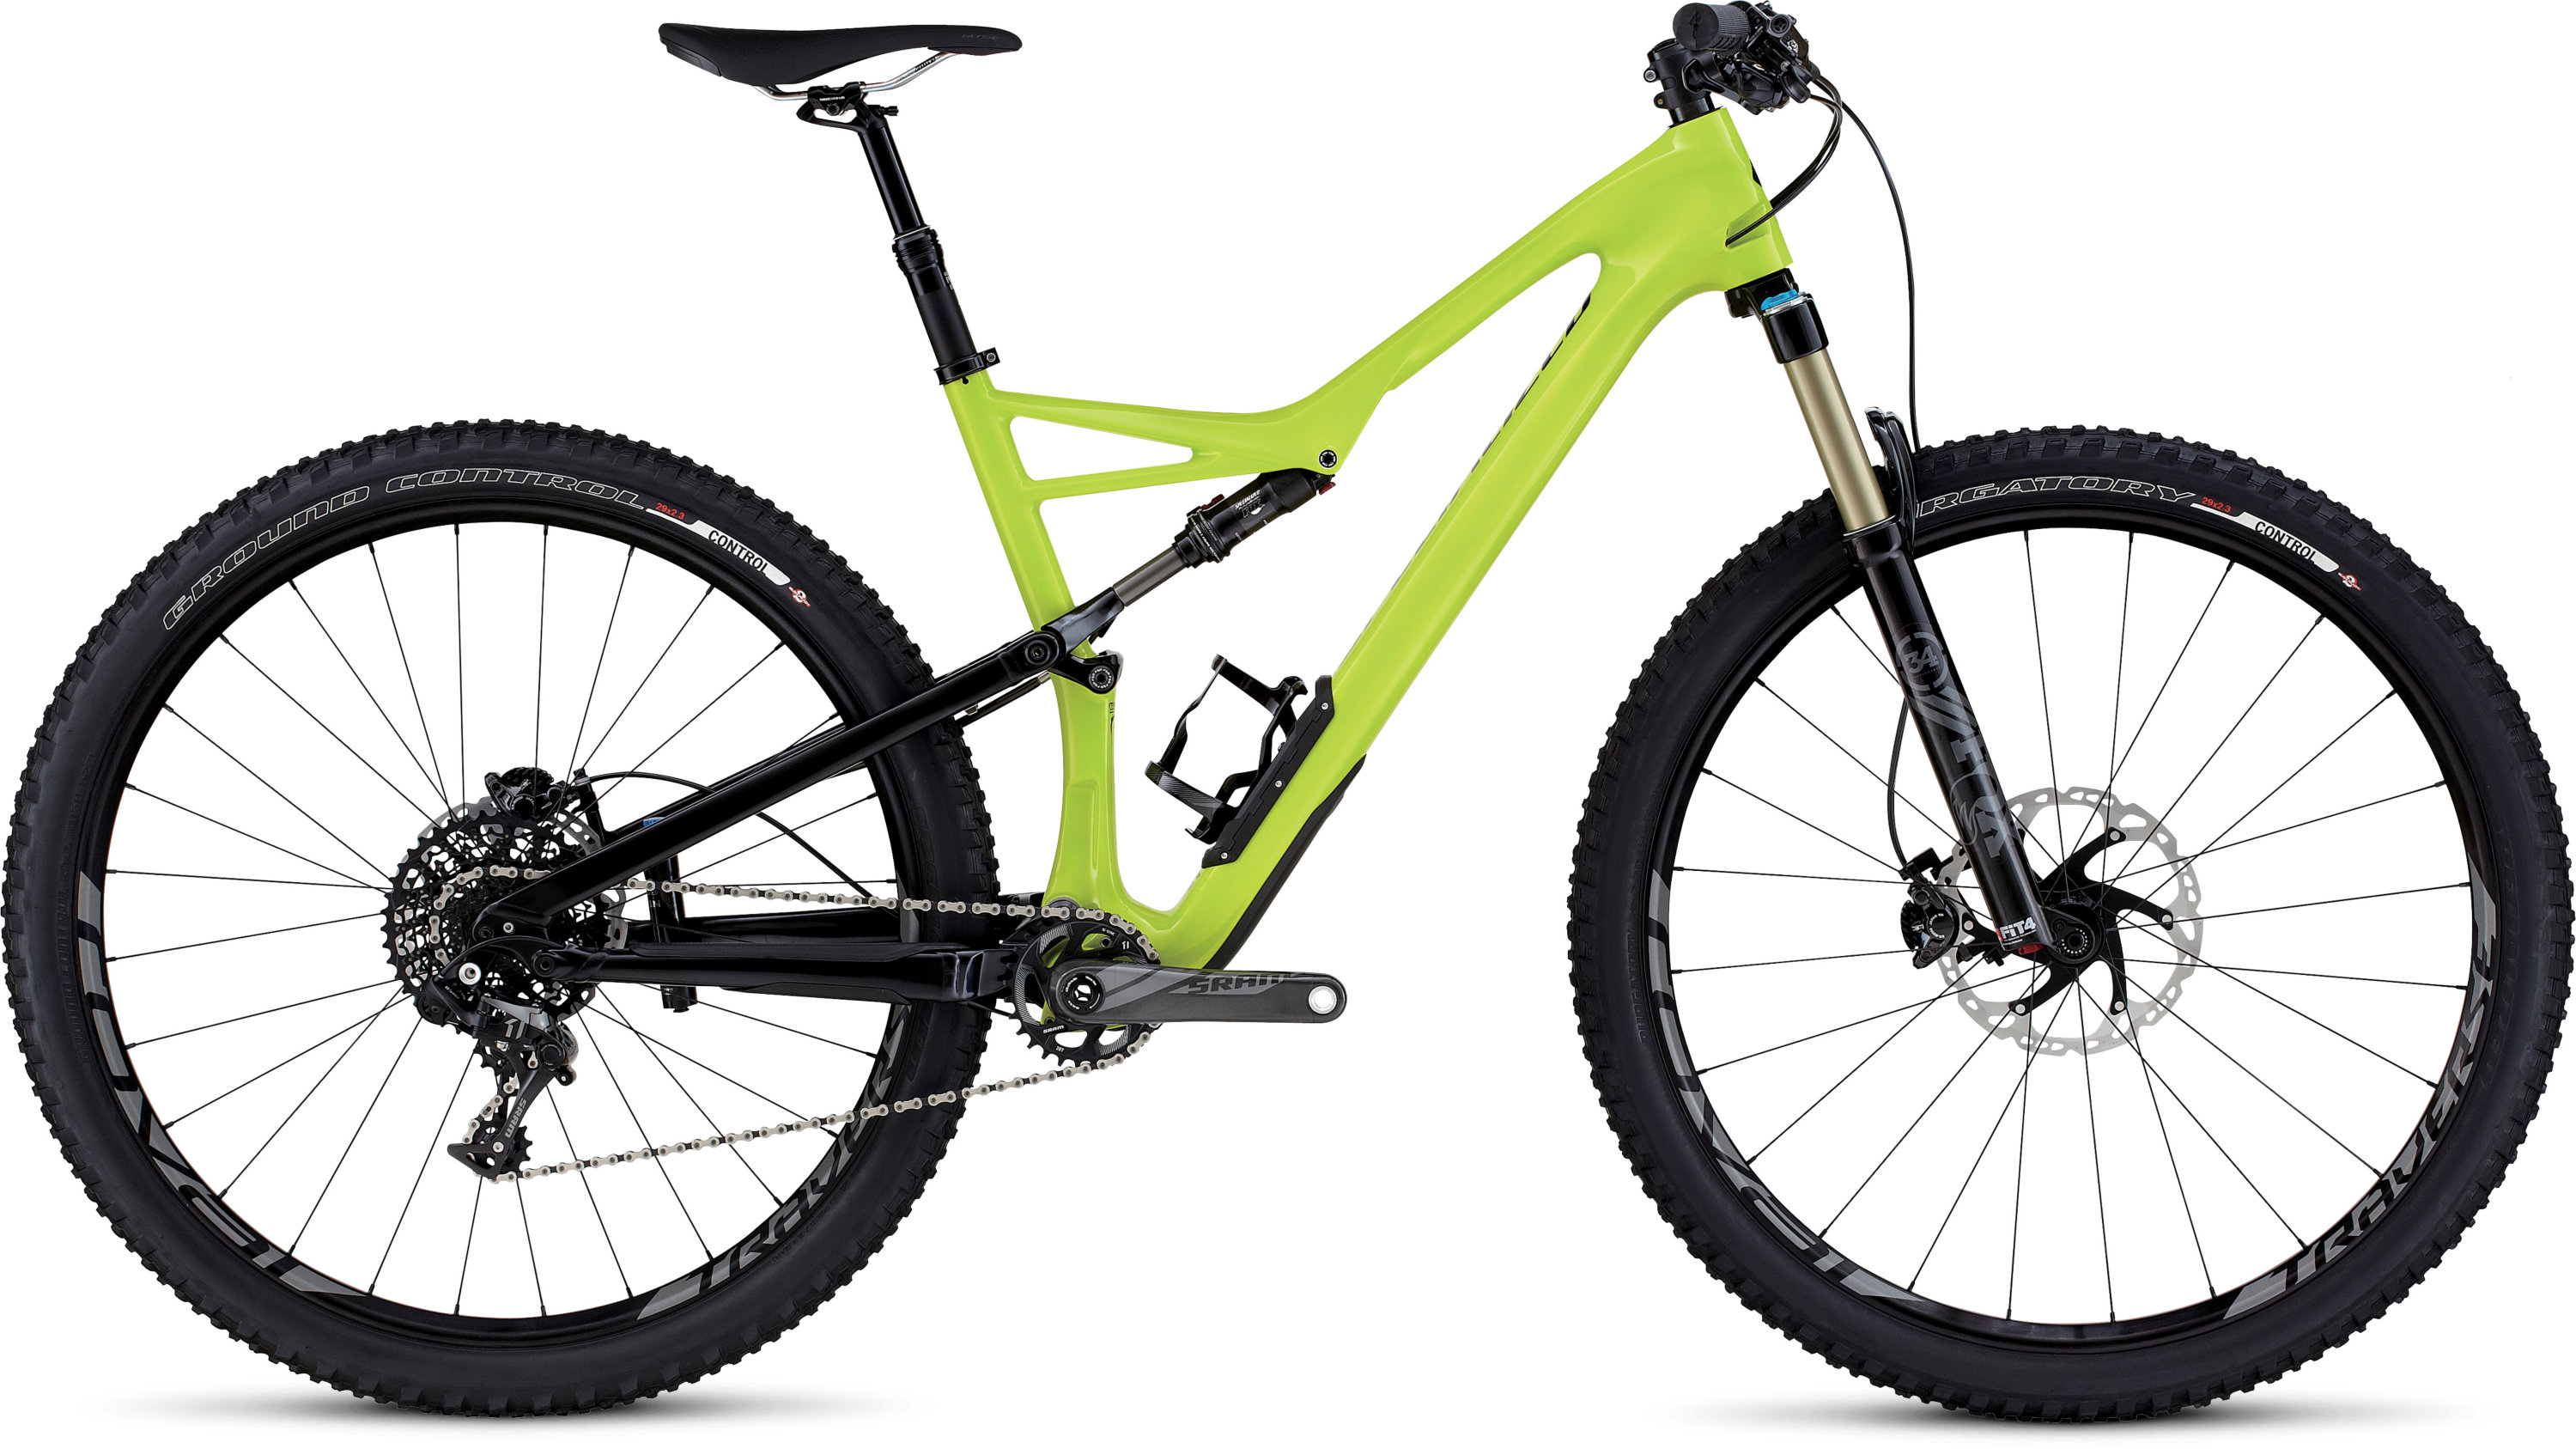 SPECIALIZED CAMBER FSR EXPERT CARBON 29 HYP/BLK S - Bikedreams & Dustbikes